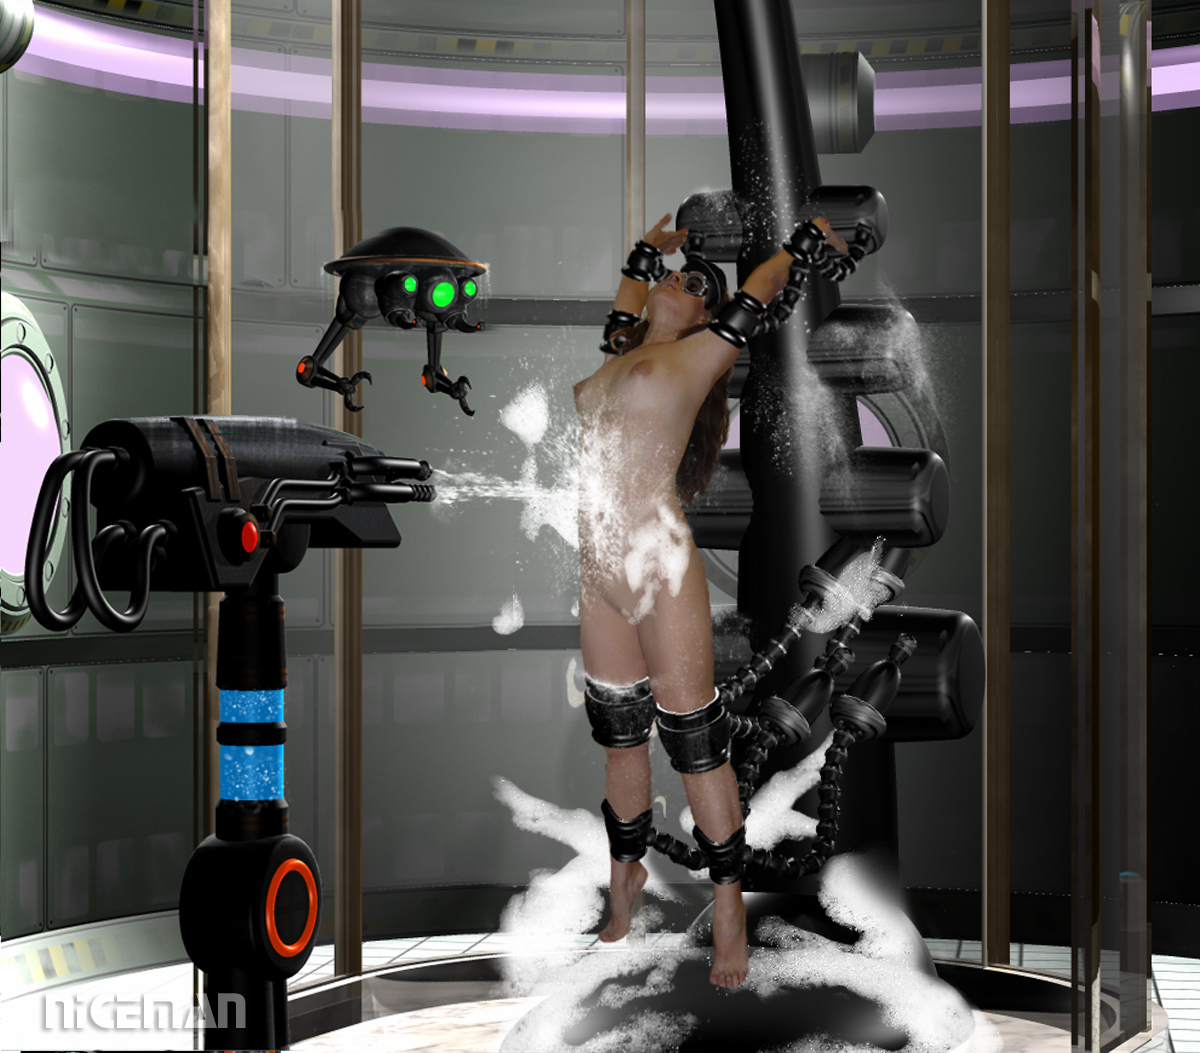 Asian Dyna gets washed by mad science robots!